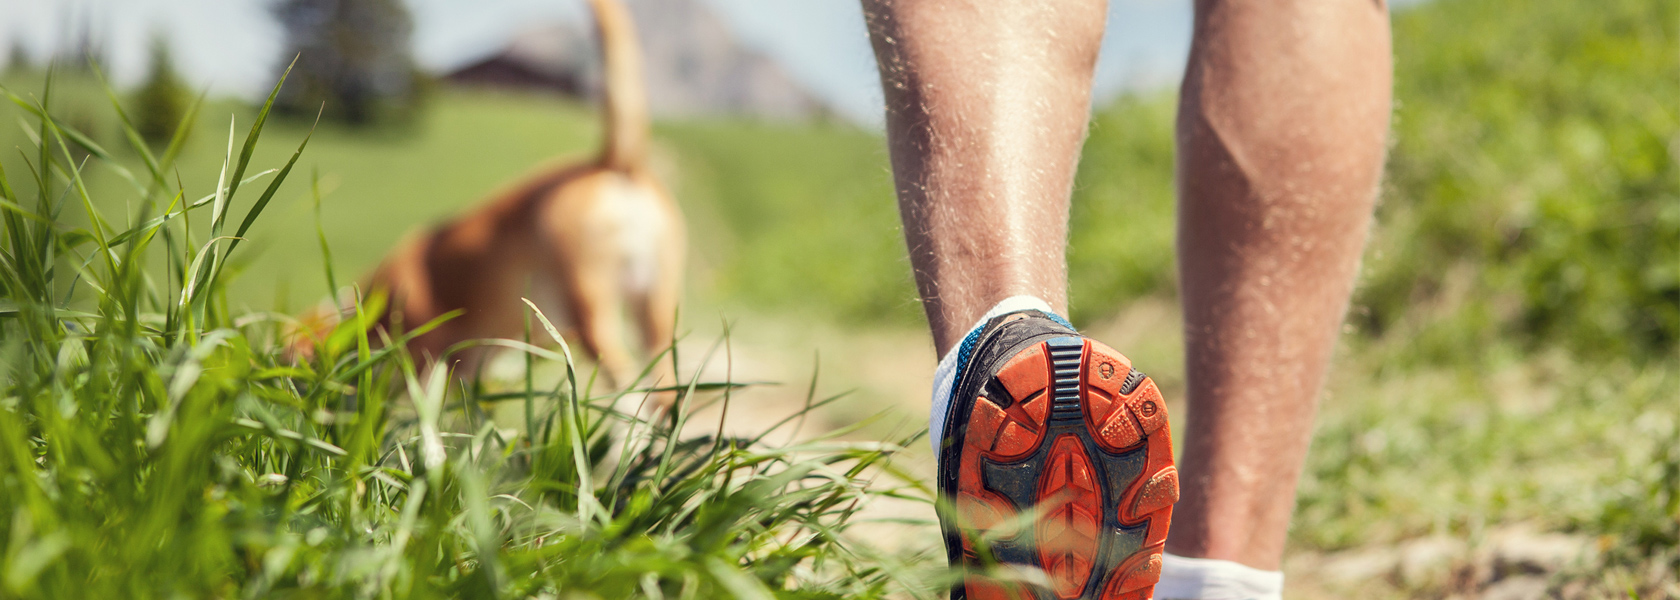 Walker_Trainers_Dog_1680px